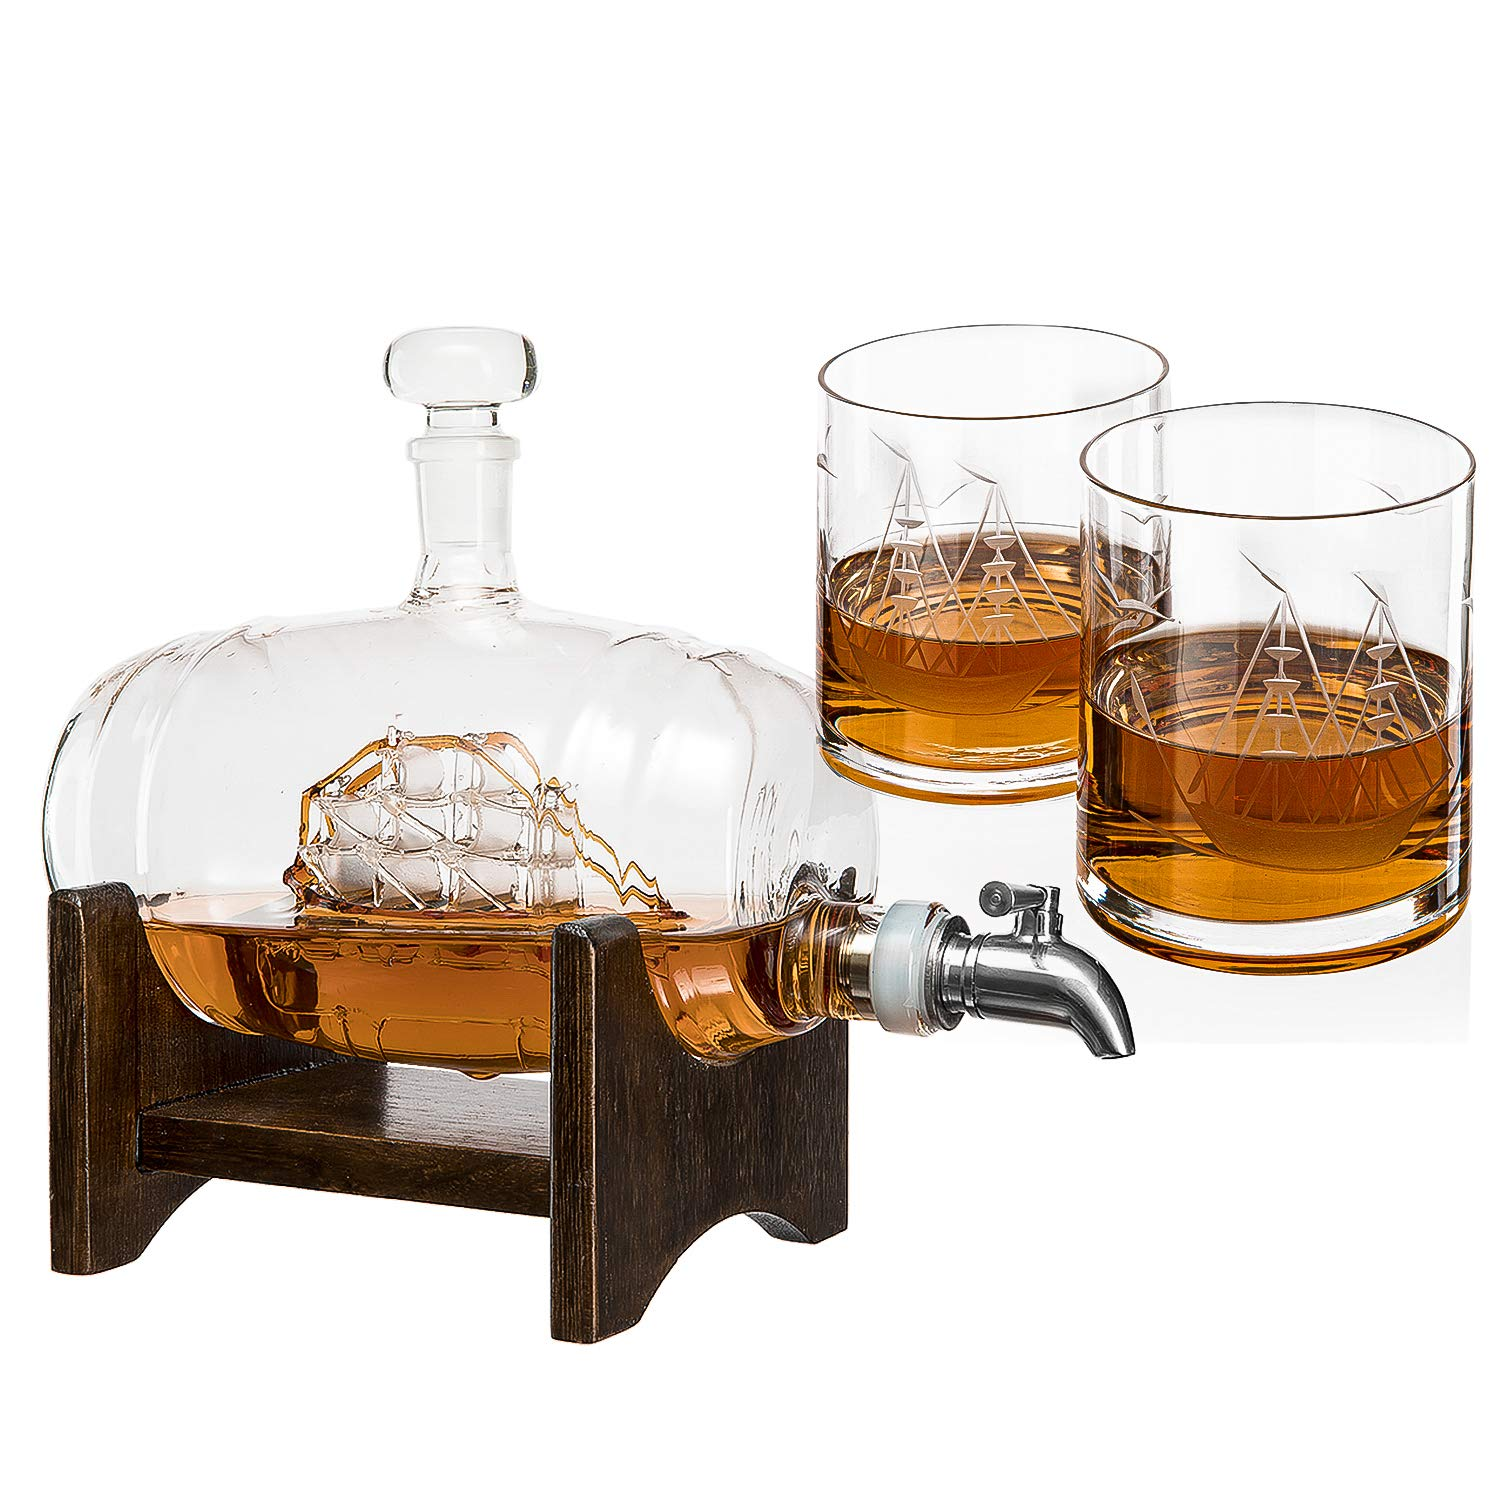 Whiskey Barrel Decanter With Ship With 2 Glasses - By The Wine Savant Decanter by The Wine Savant